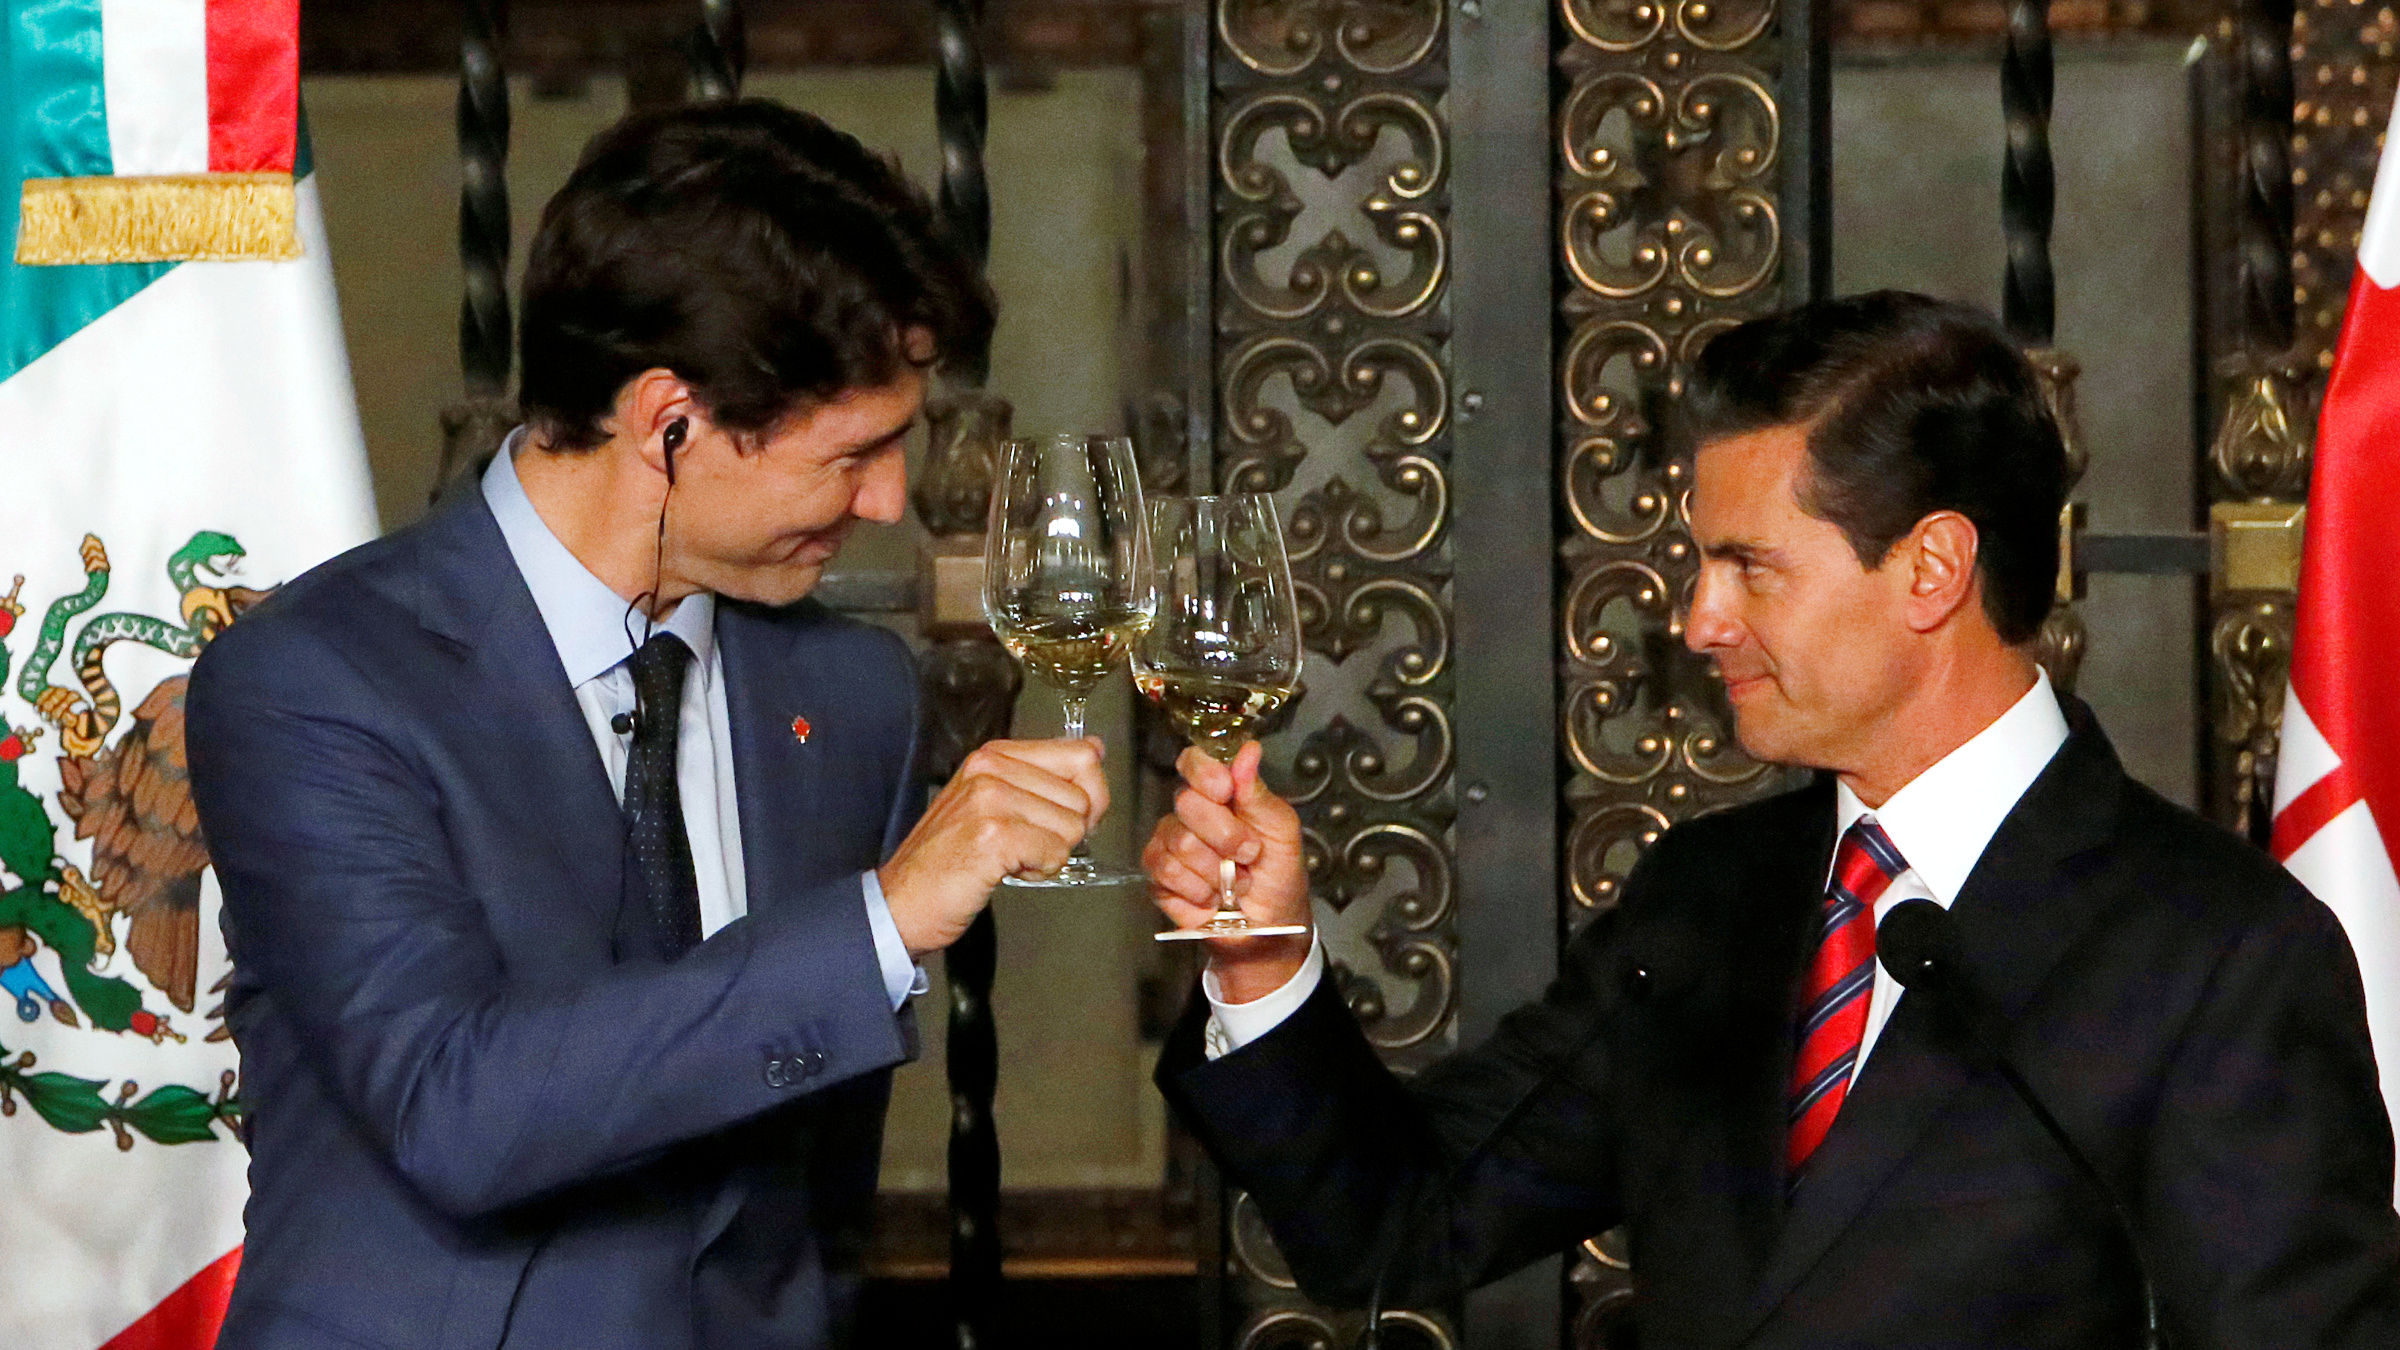 Canada's Prime Minister Justin Trudeau and Mexico's President Enrique Pena Nieto make a toast during a dinner ceremony at the presidential palace in Mexico City, Mexico October 12, 2017.